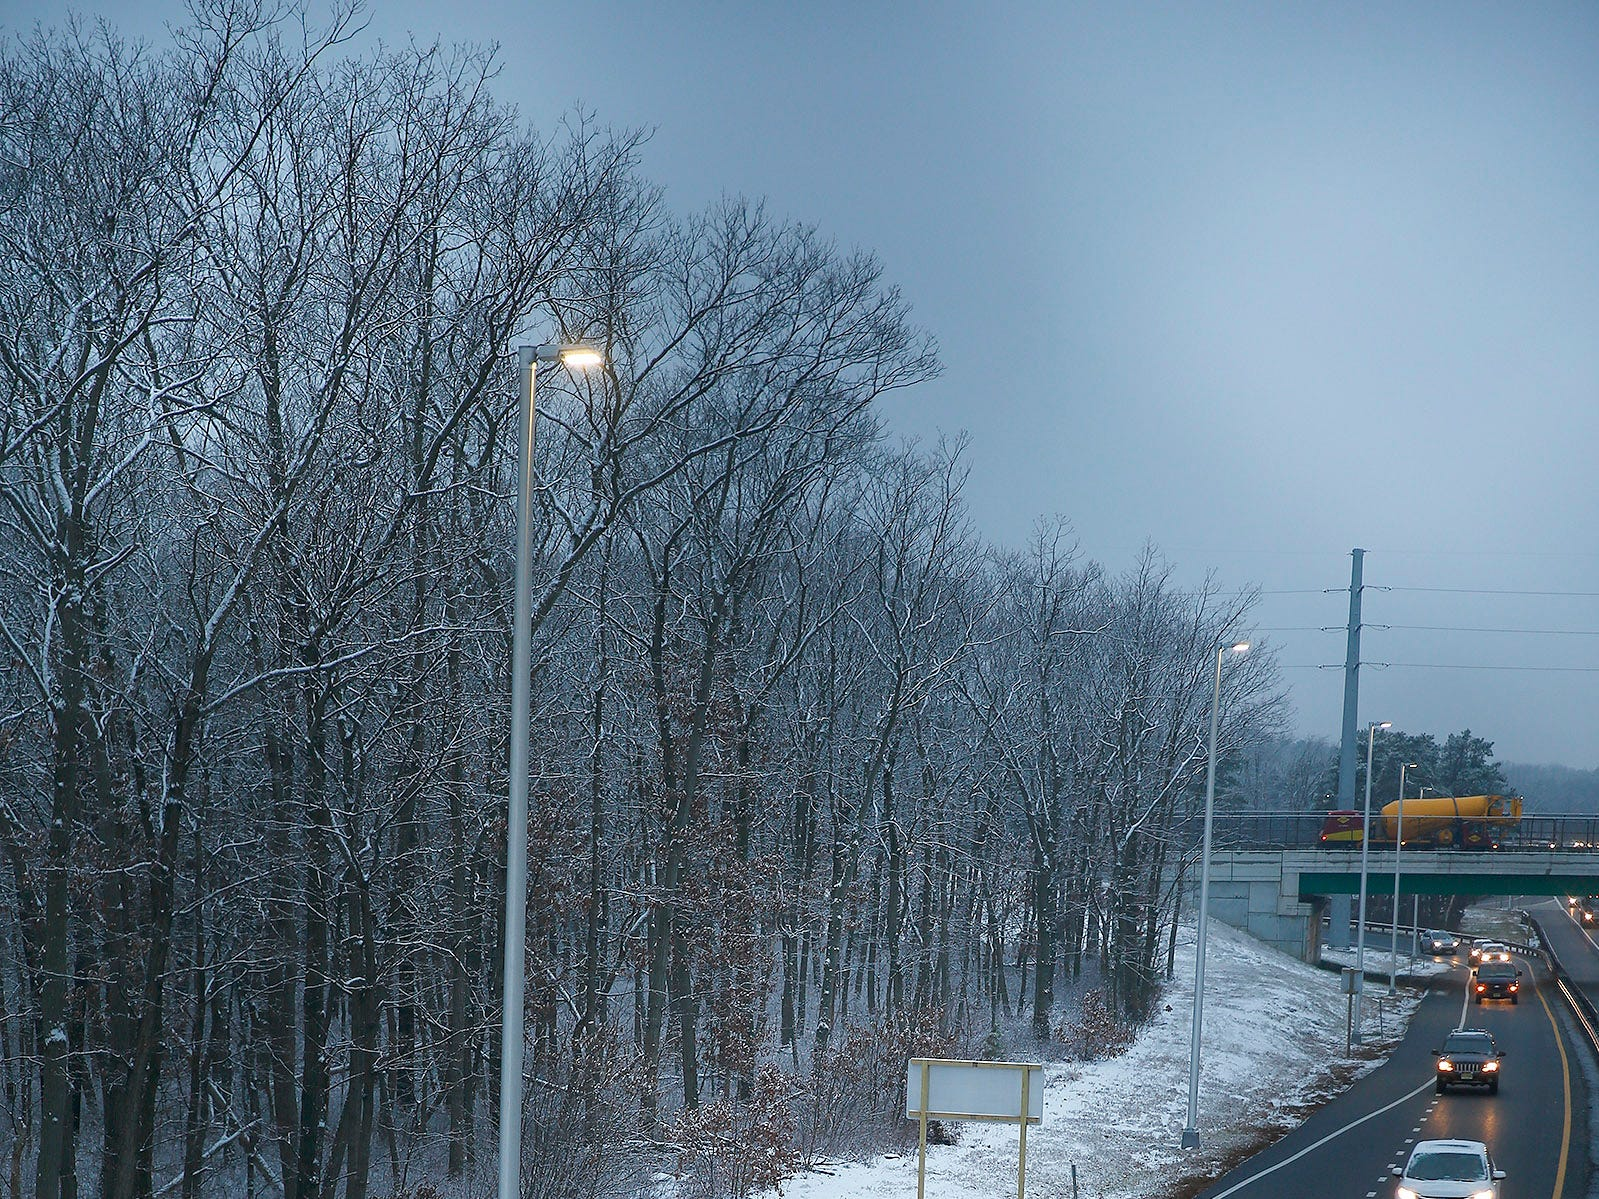 Traffic moves freely along the Garden State Parkway near exit 91 in Brick Township after a light snow Friday morning, January 18, 2019.